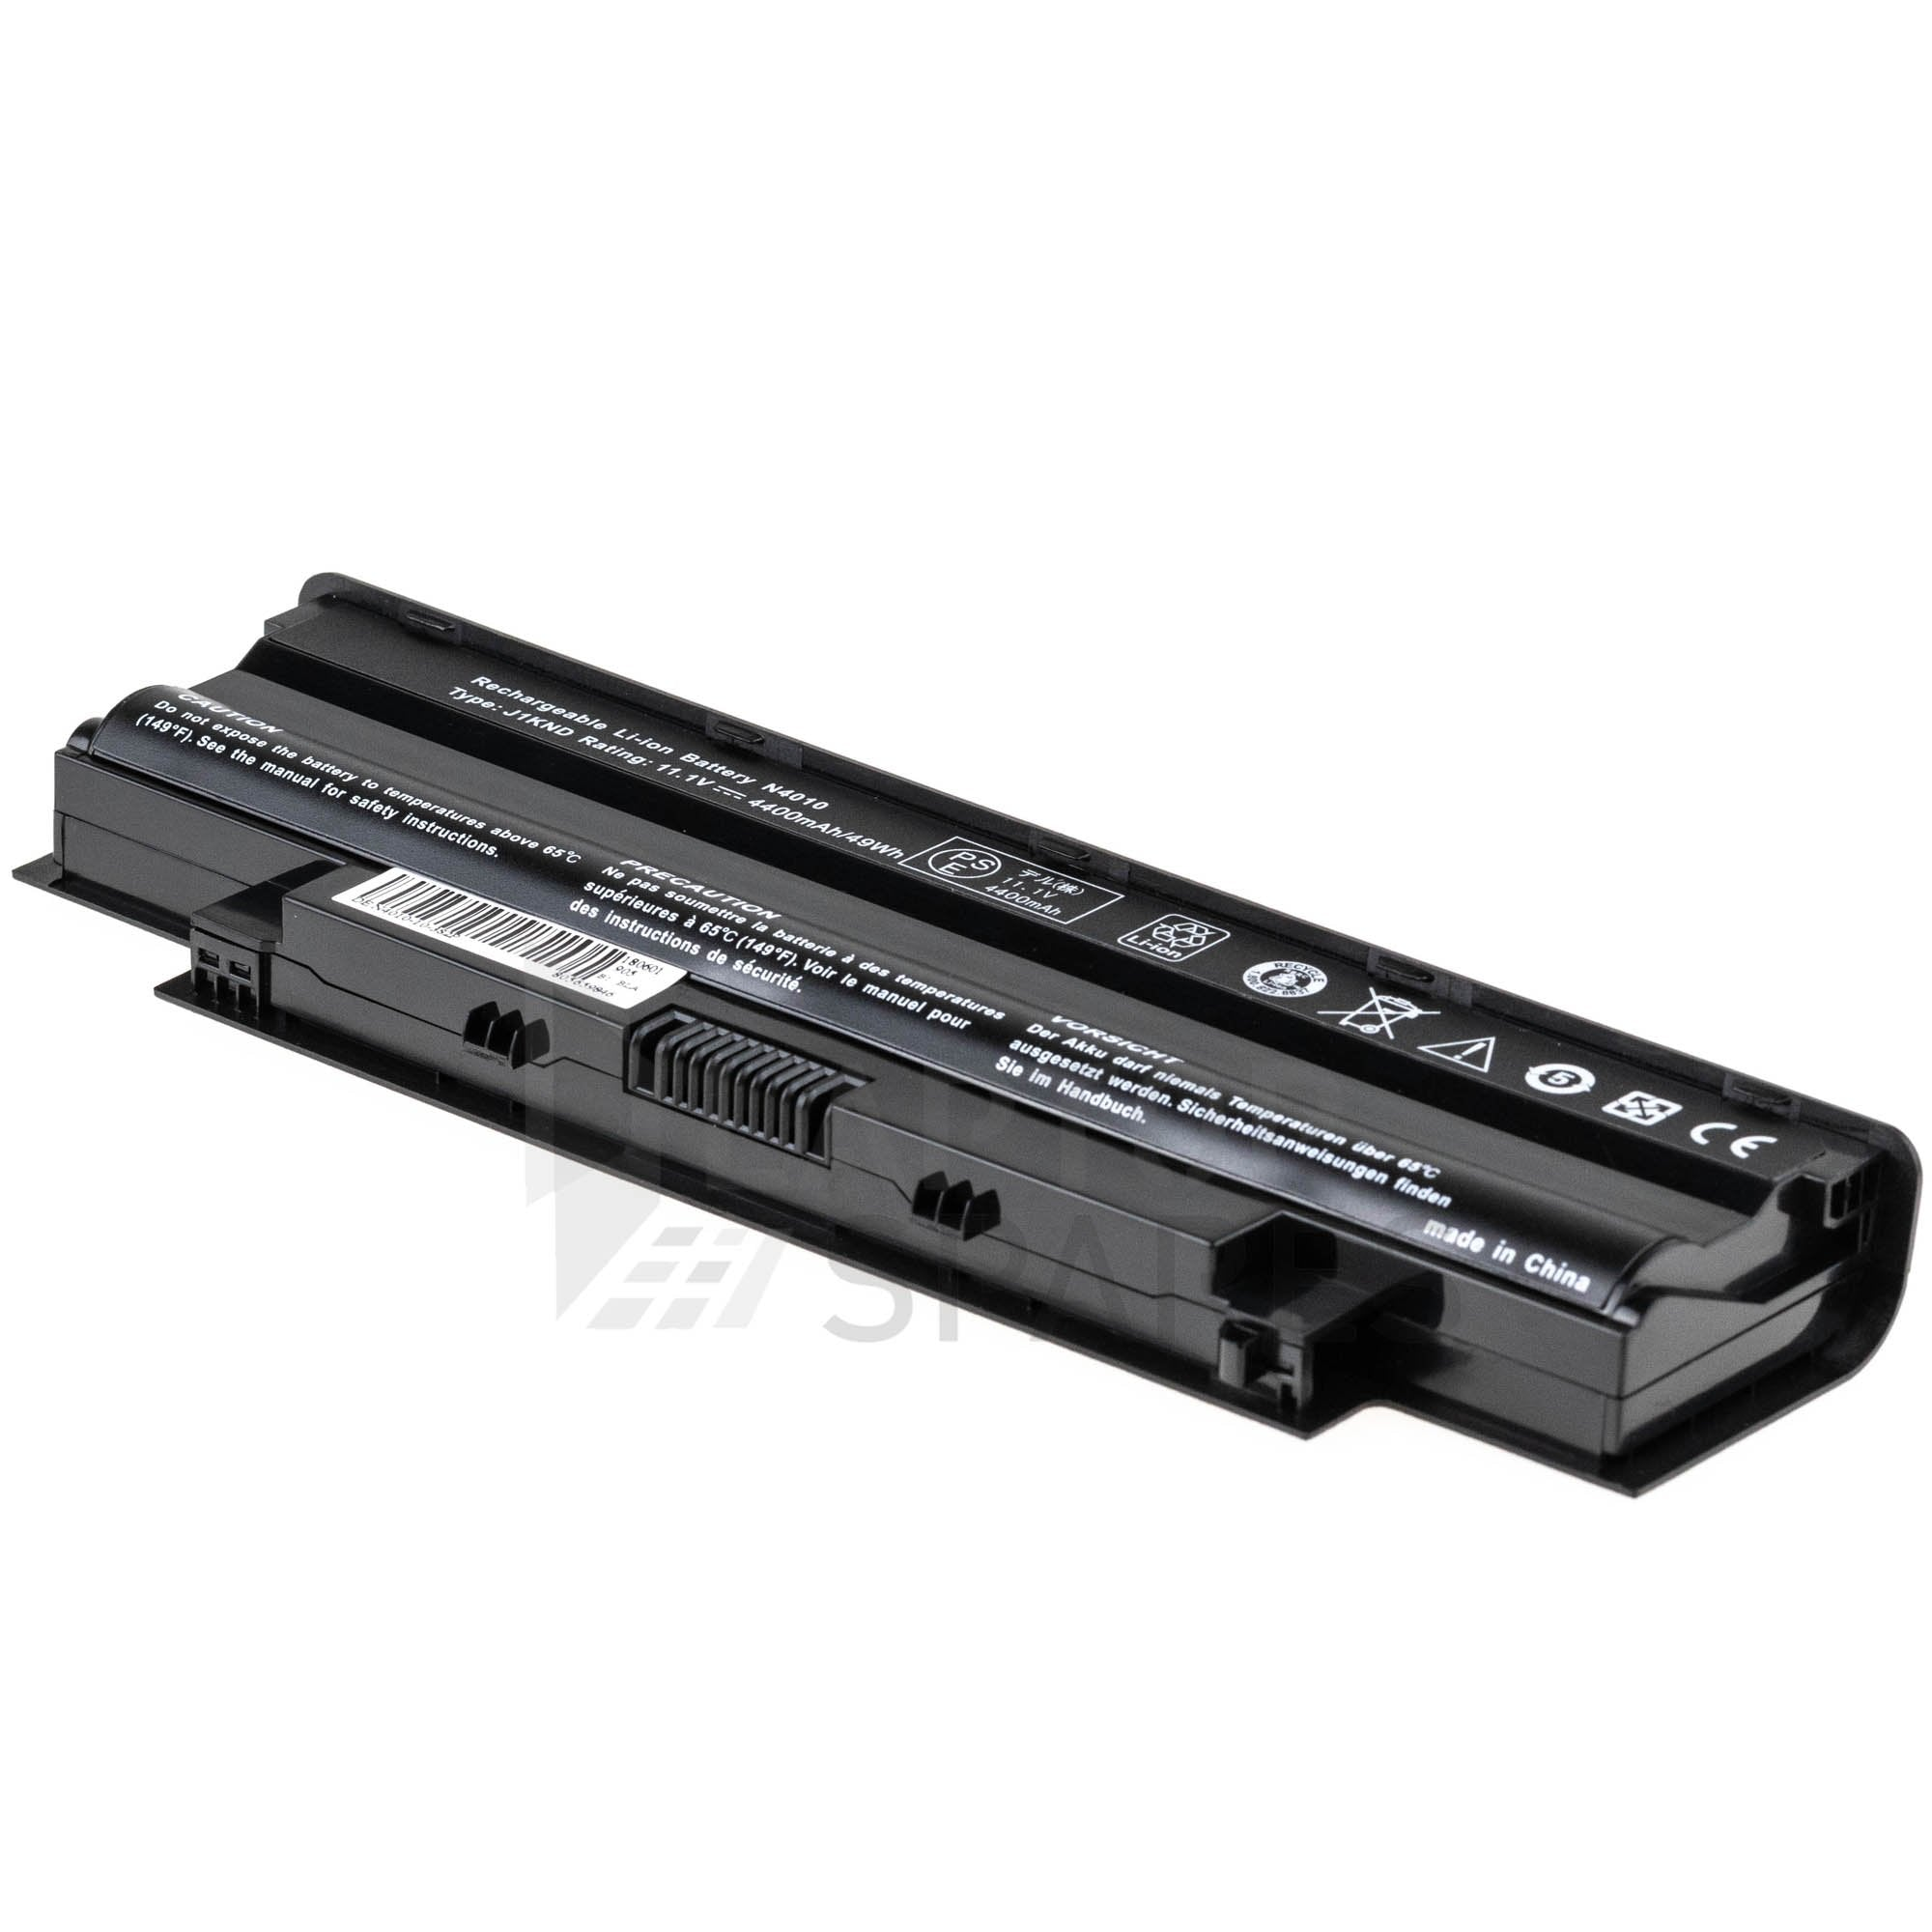 Dell Inspiron N4110 4400mAh 6 Cell Battery